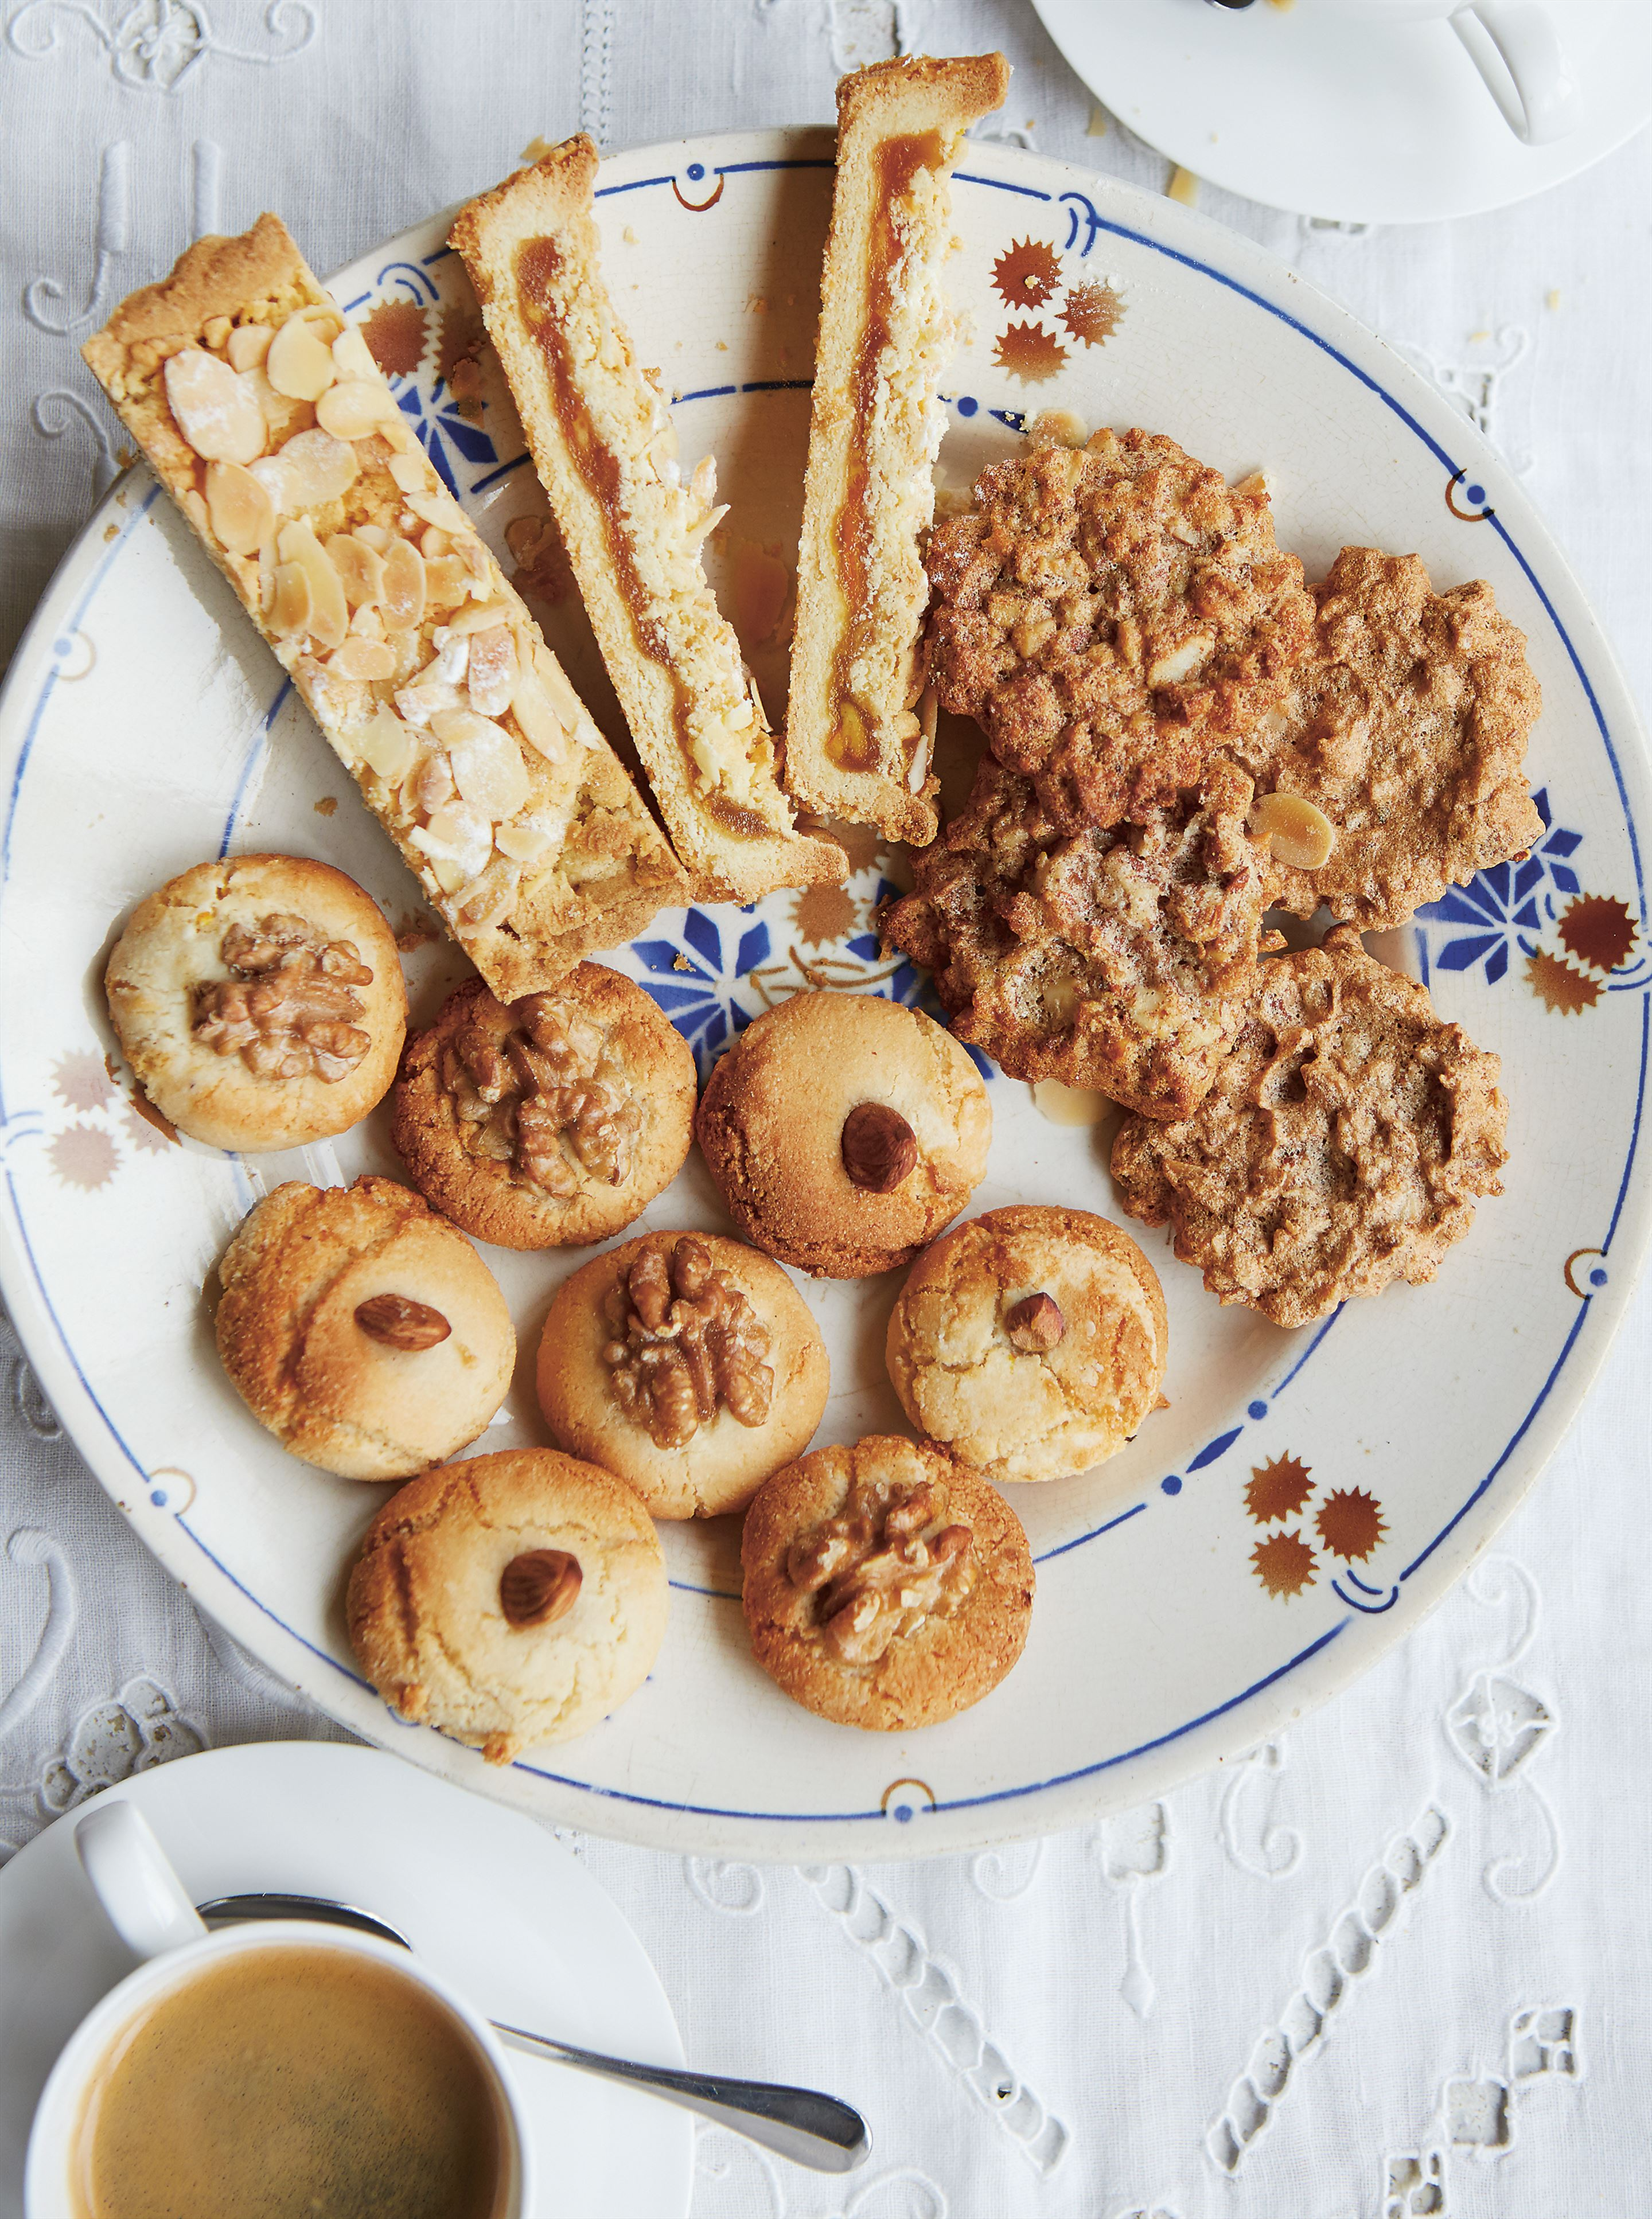 Almond & honey biscuits